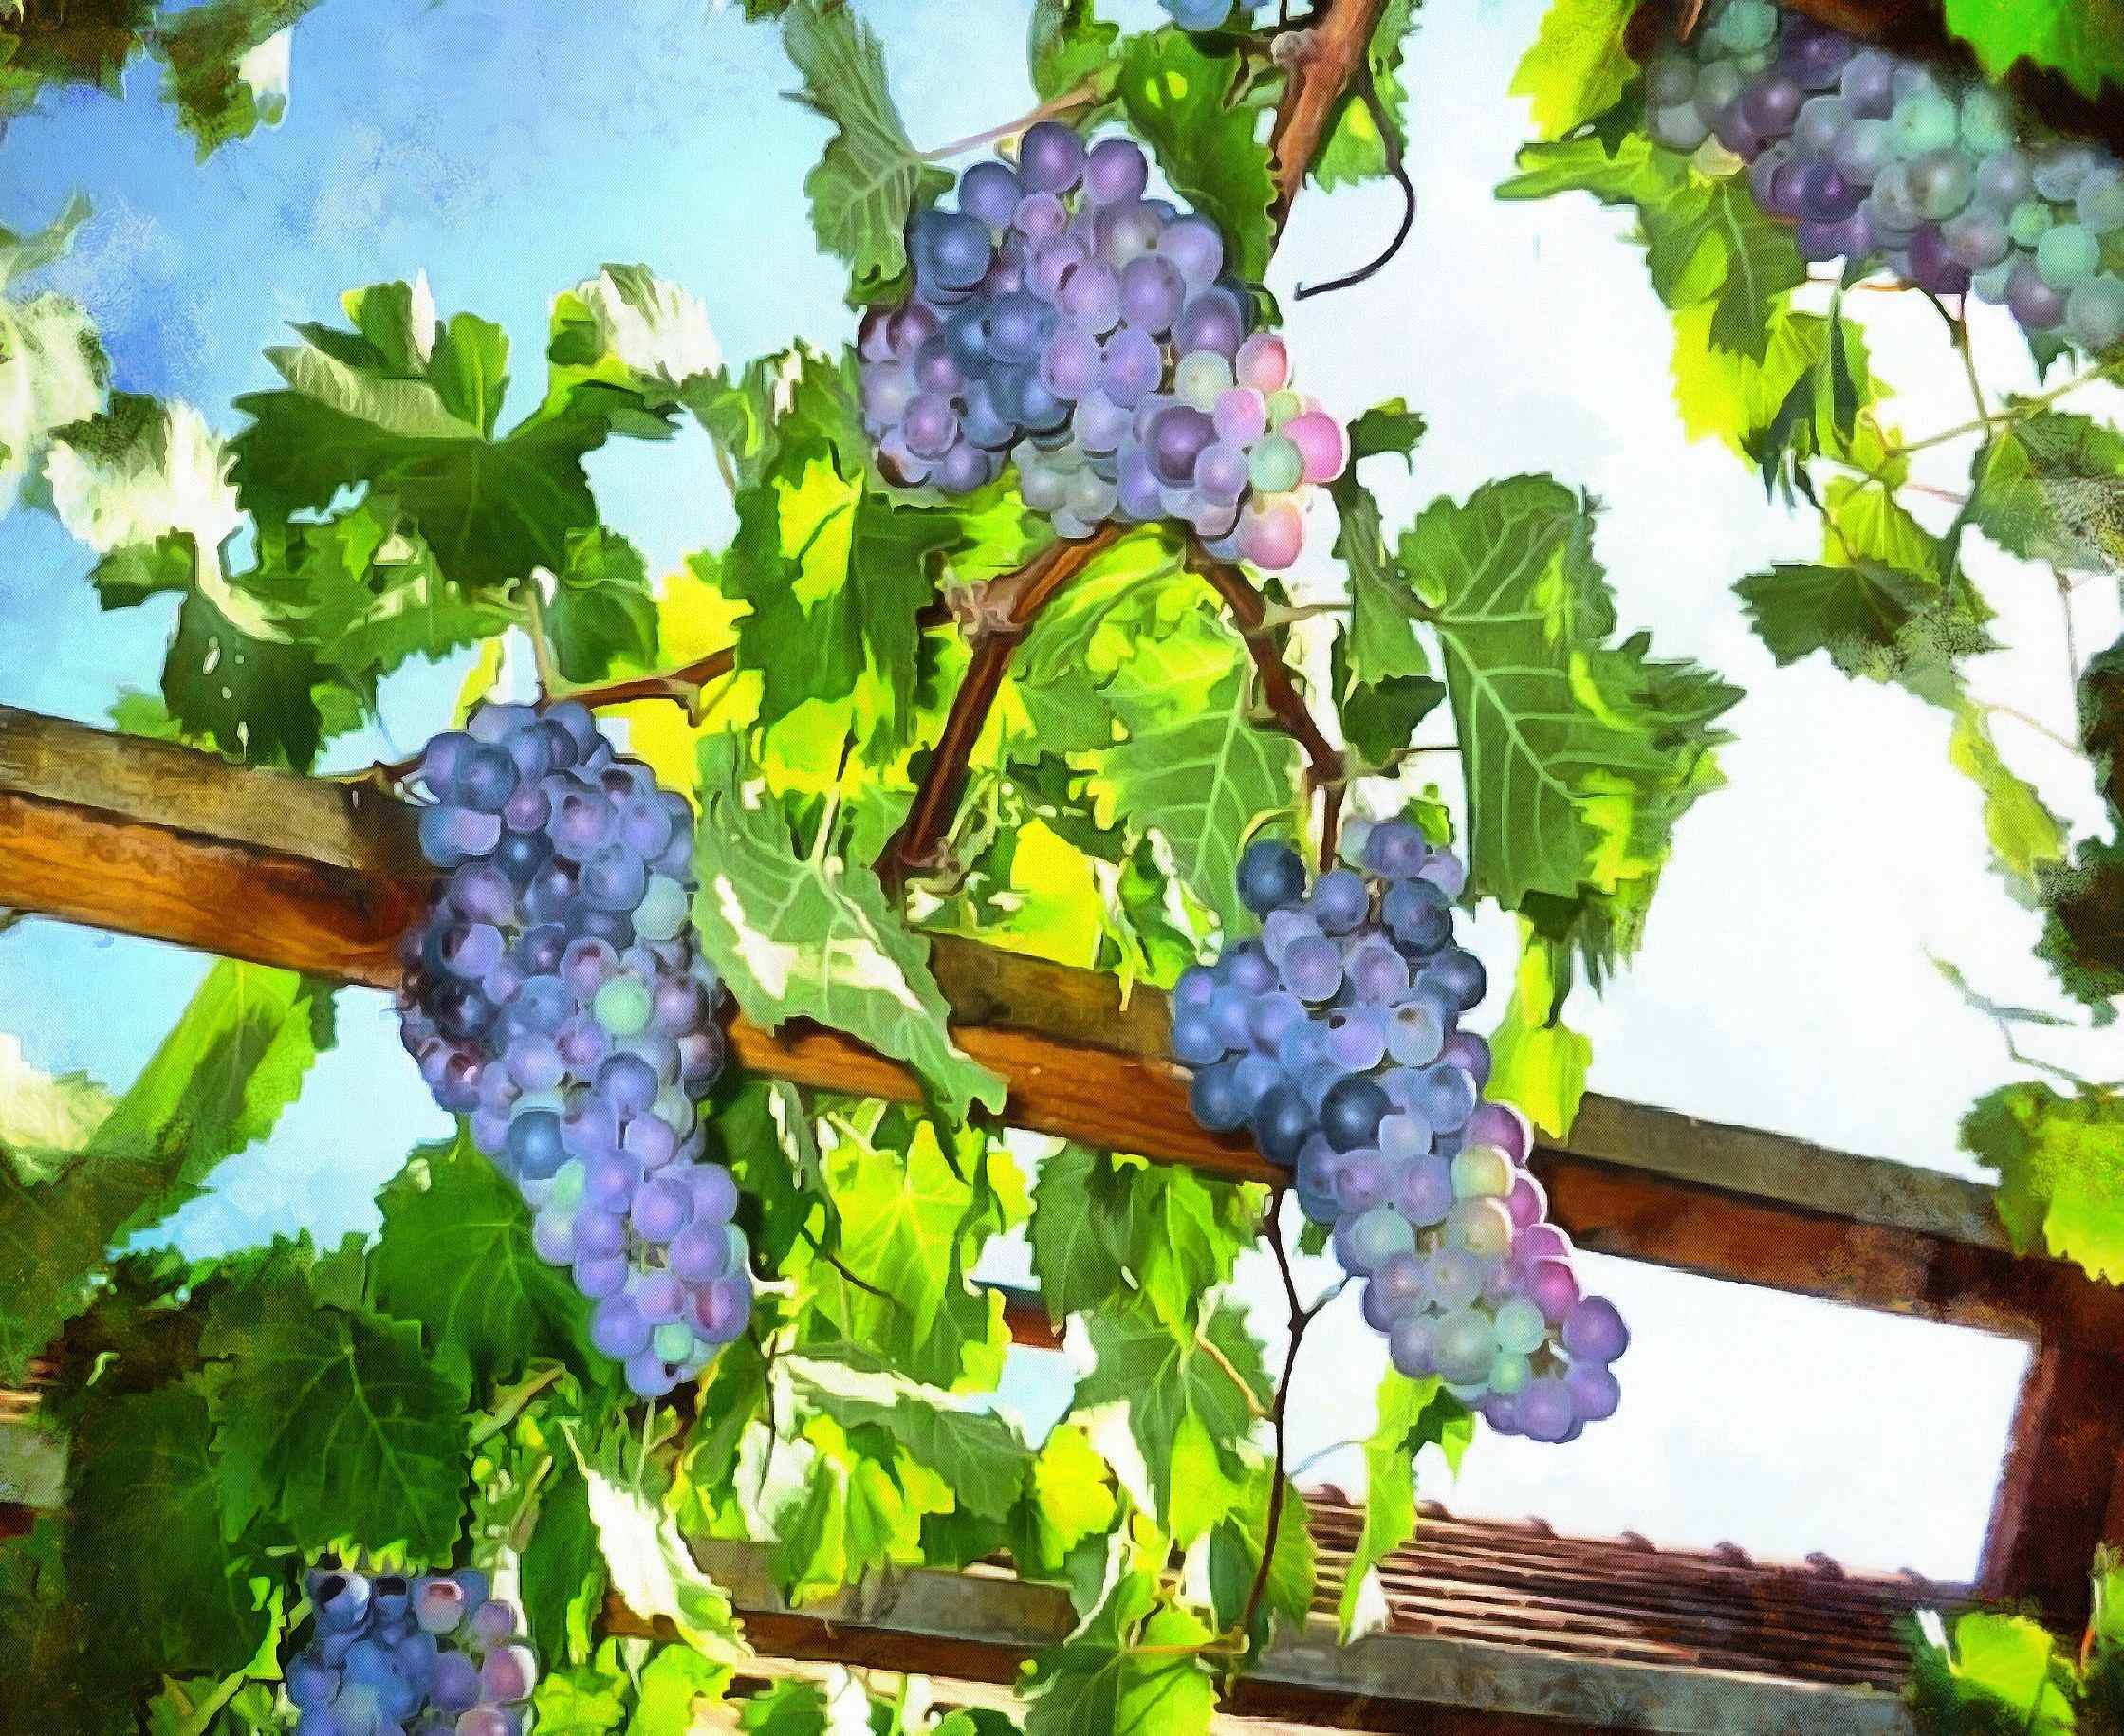 grape, grapes, arbor, blue grapes,